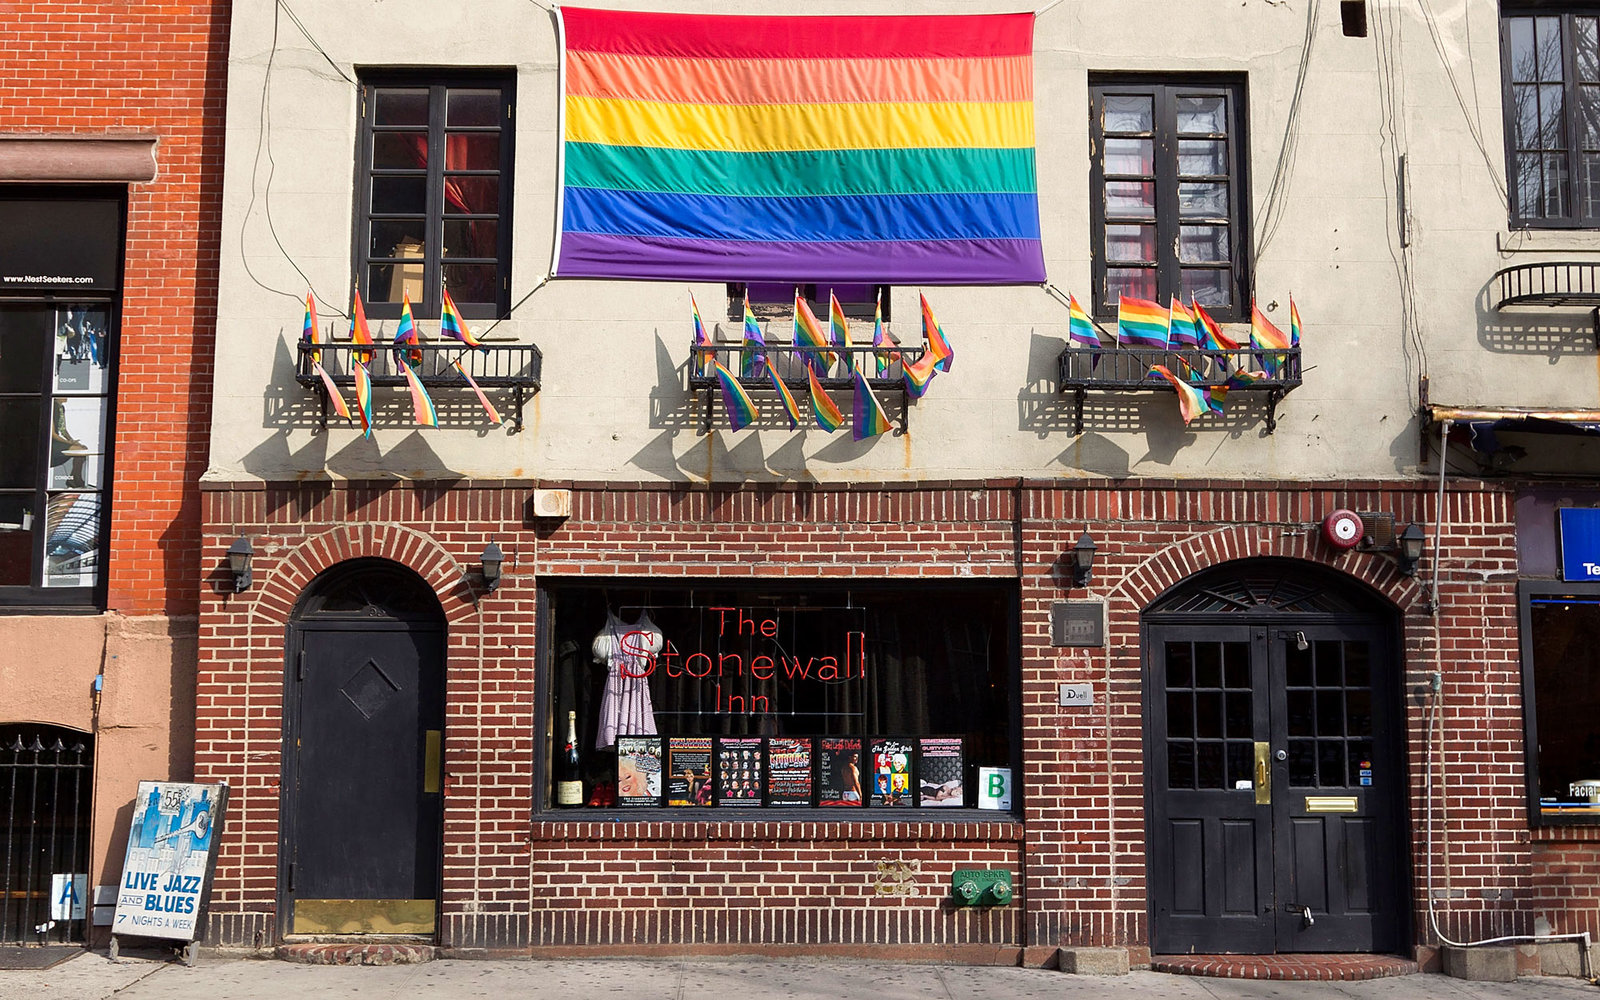 Stonewall bar building with gay pride flag hanging on building